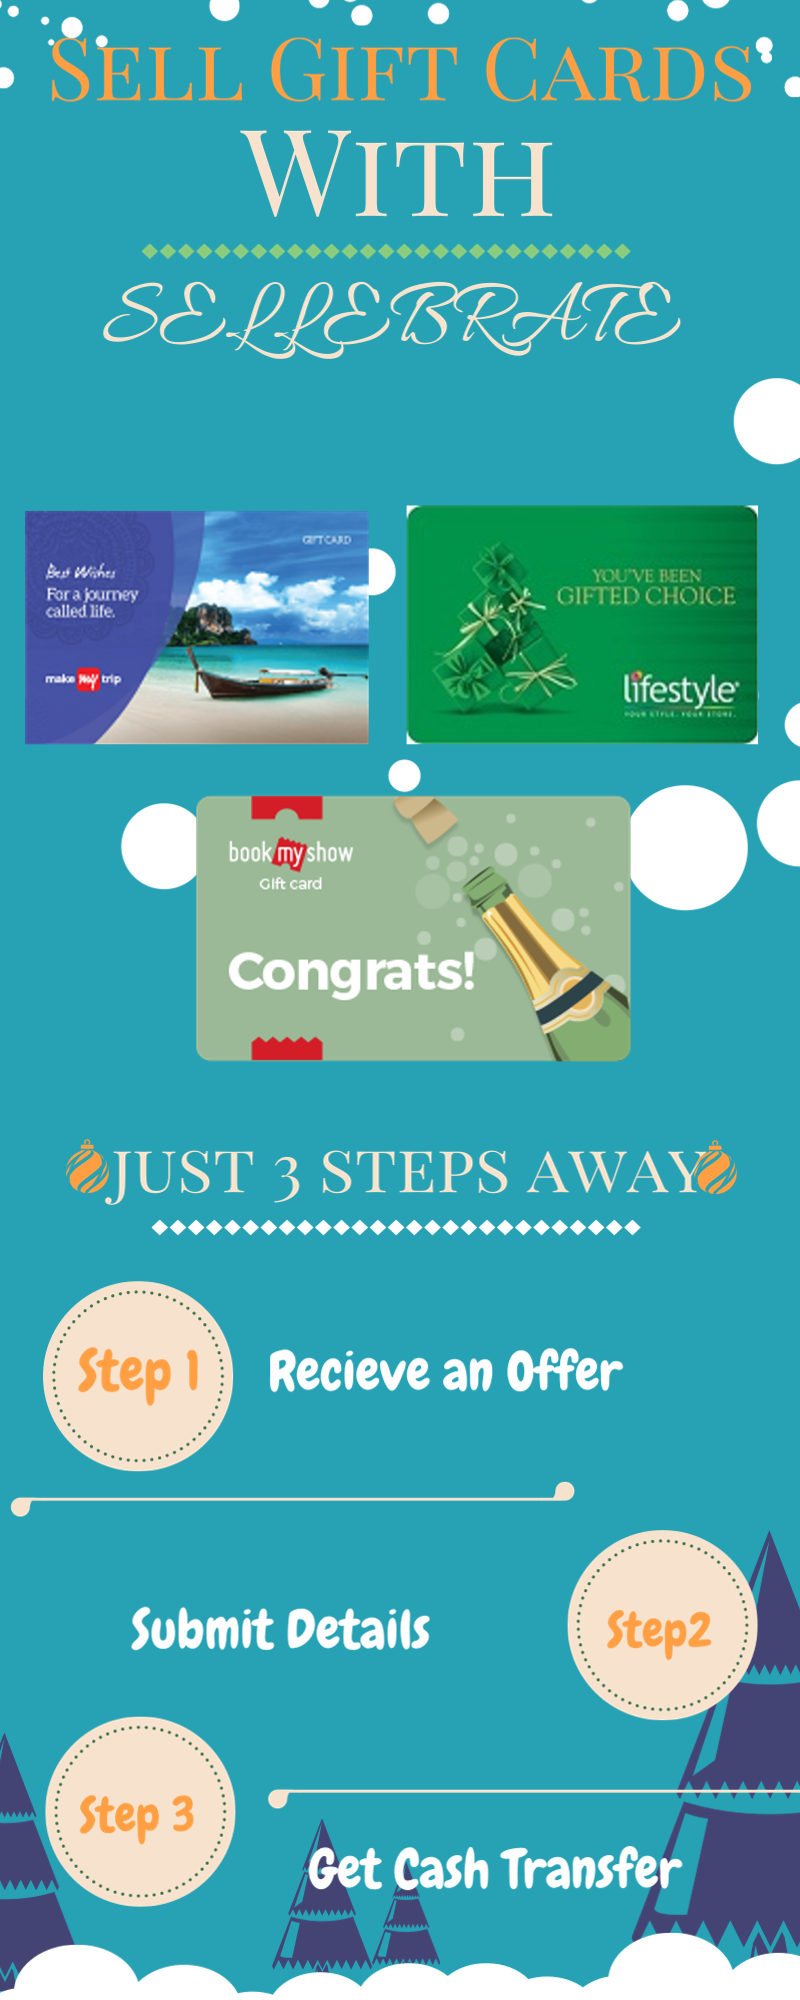 Discover how to sell Gift Card in 3 easy steps